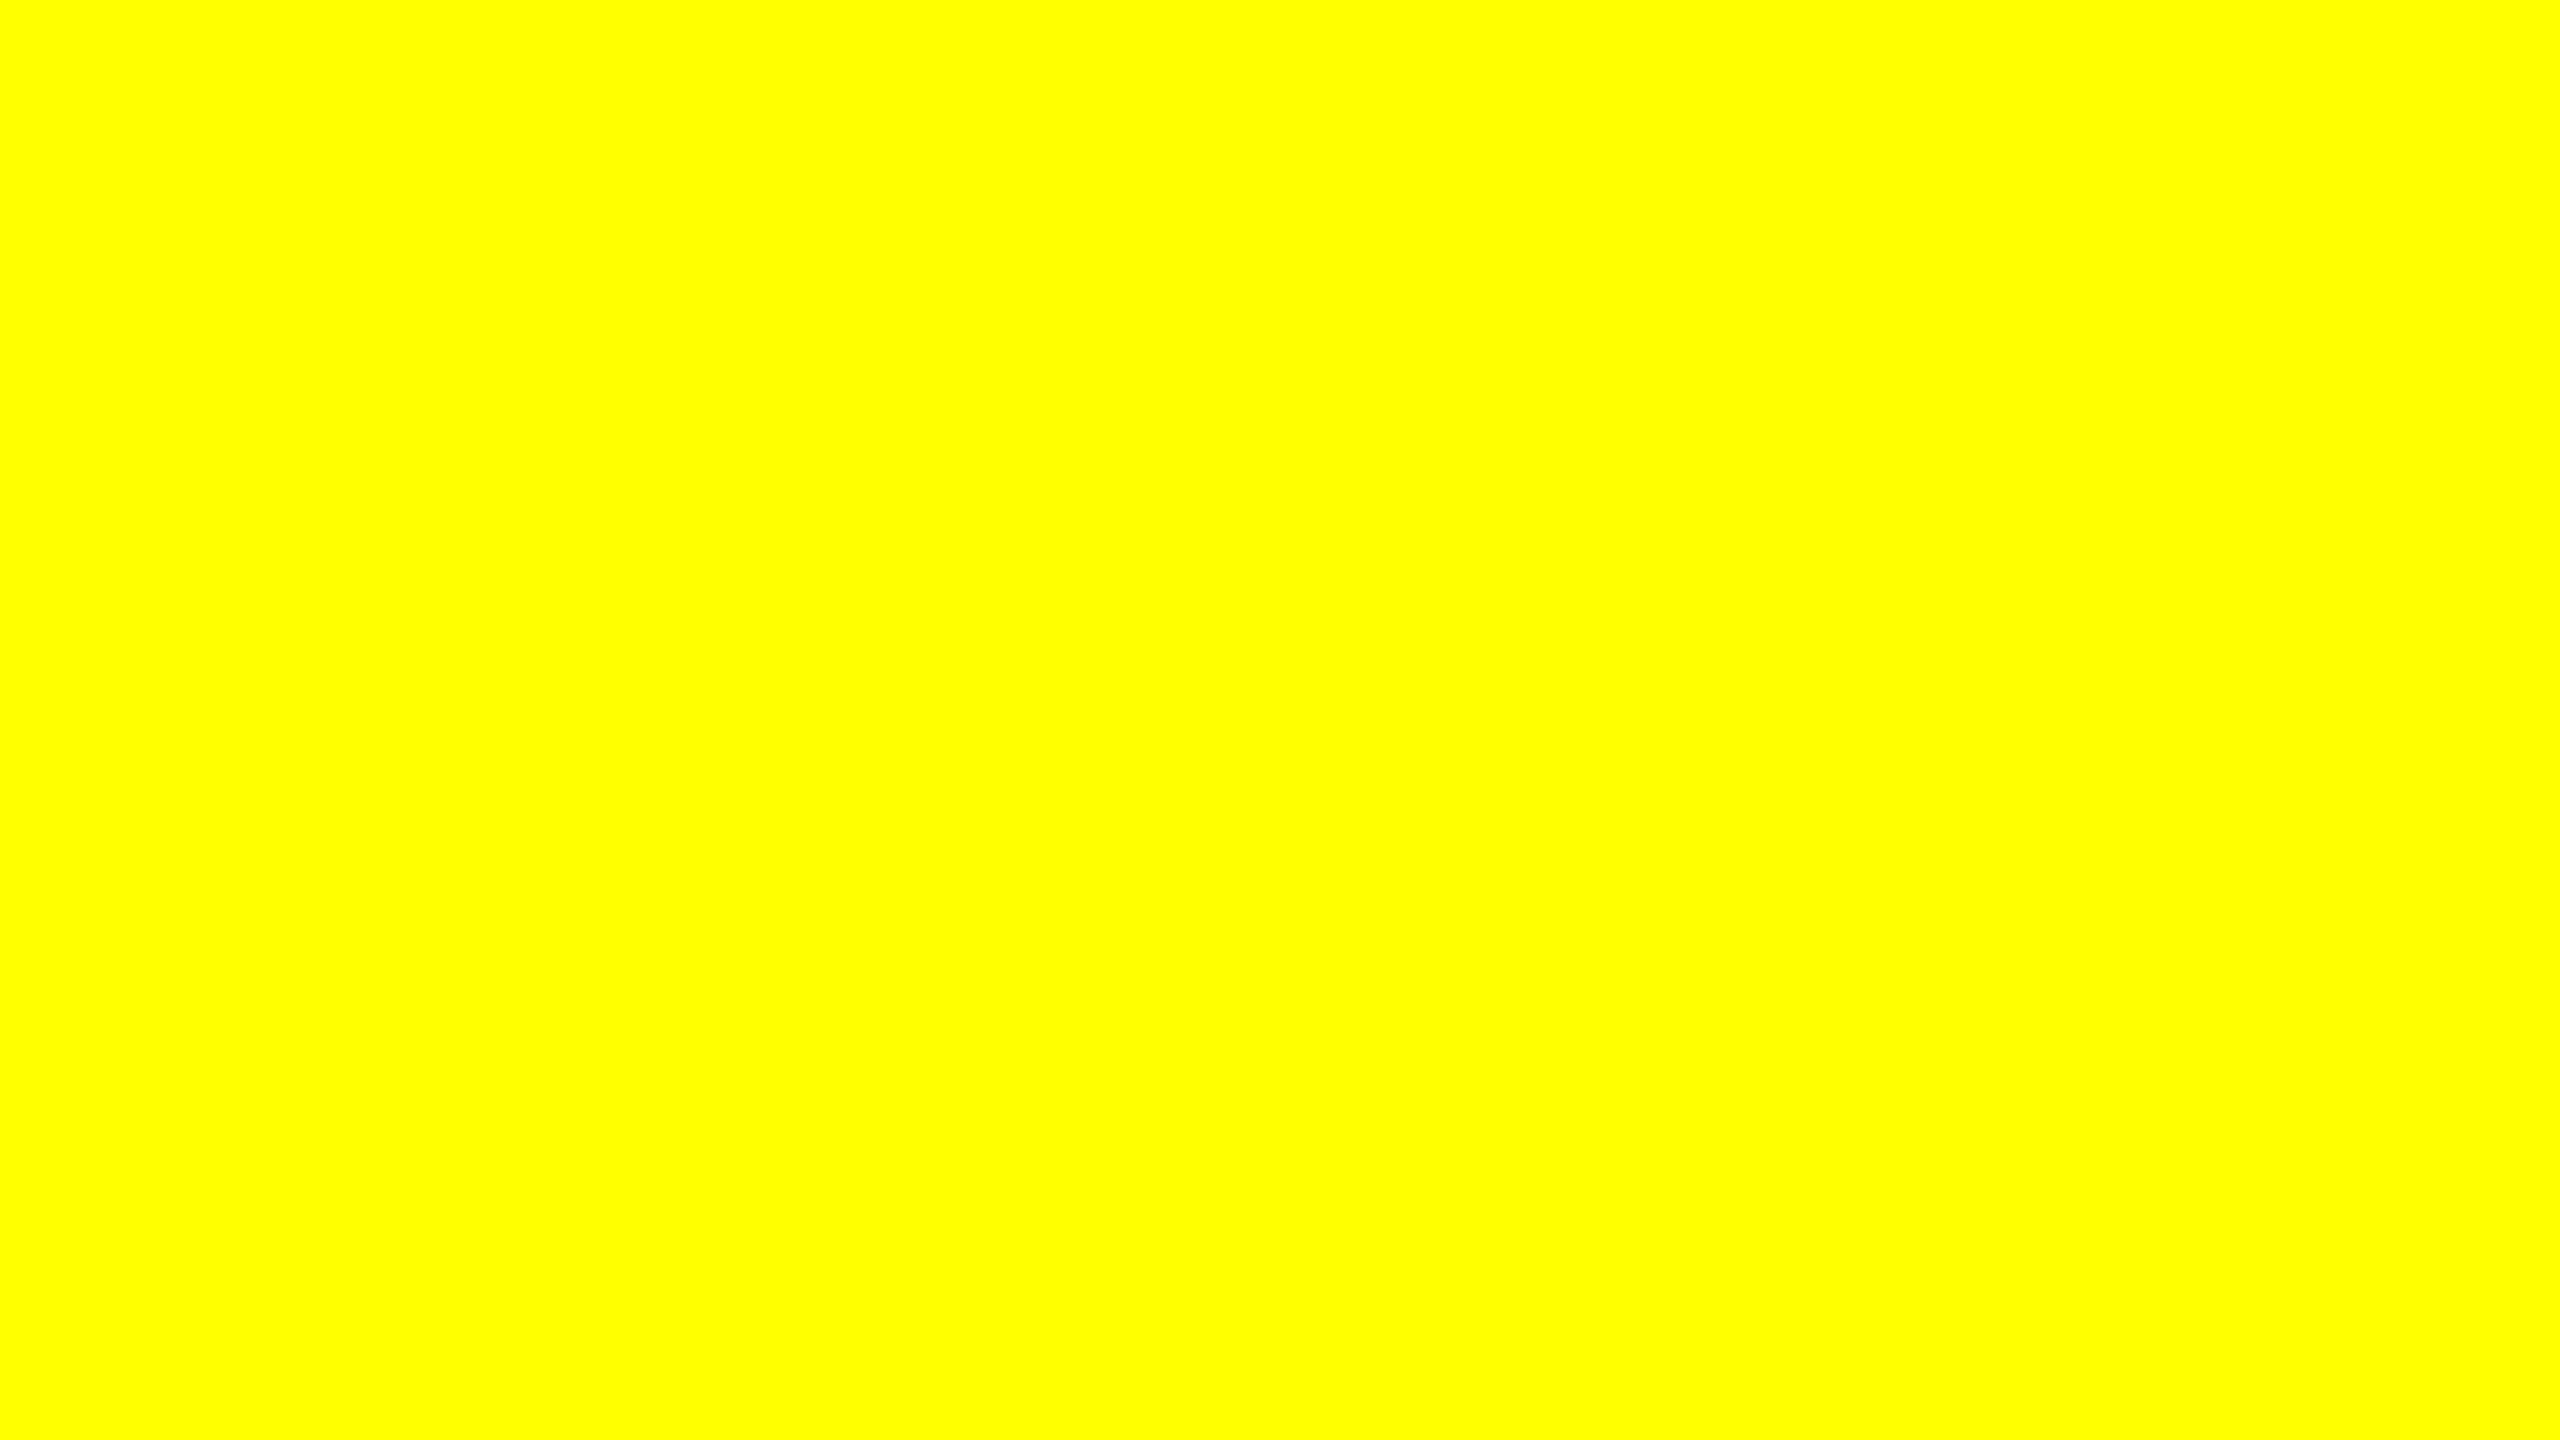 2560x1440 Yellow-solid-color-images-hd-wallpapers